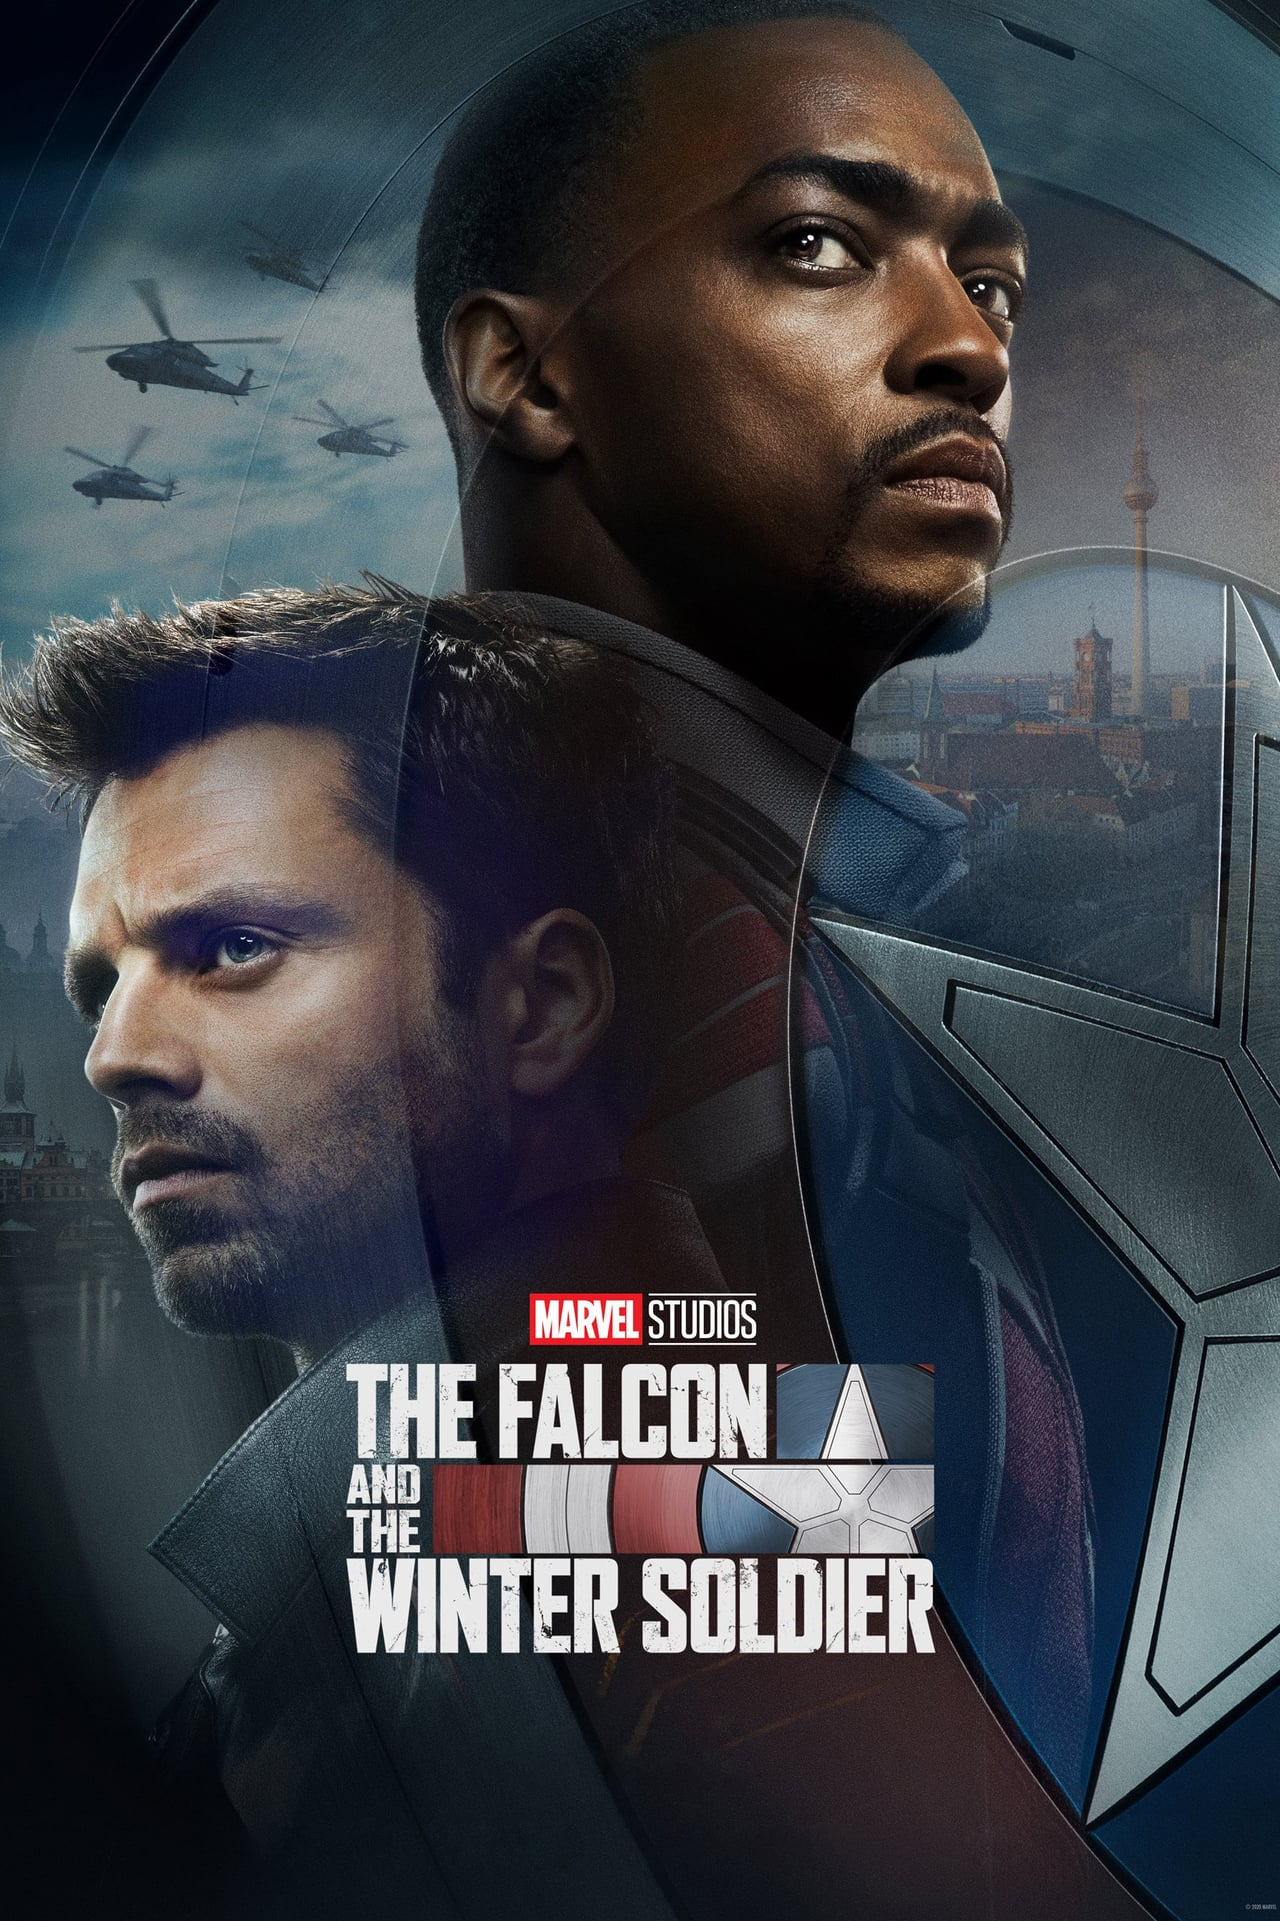 The Falcon and the Winter Soldier (season 1)